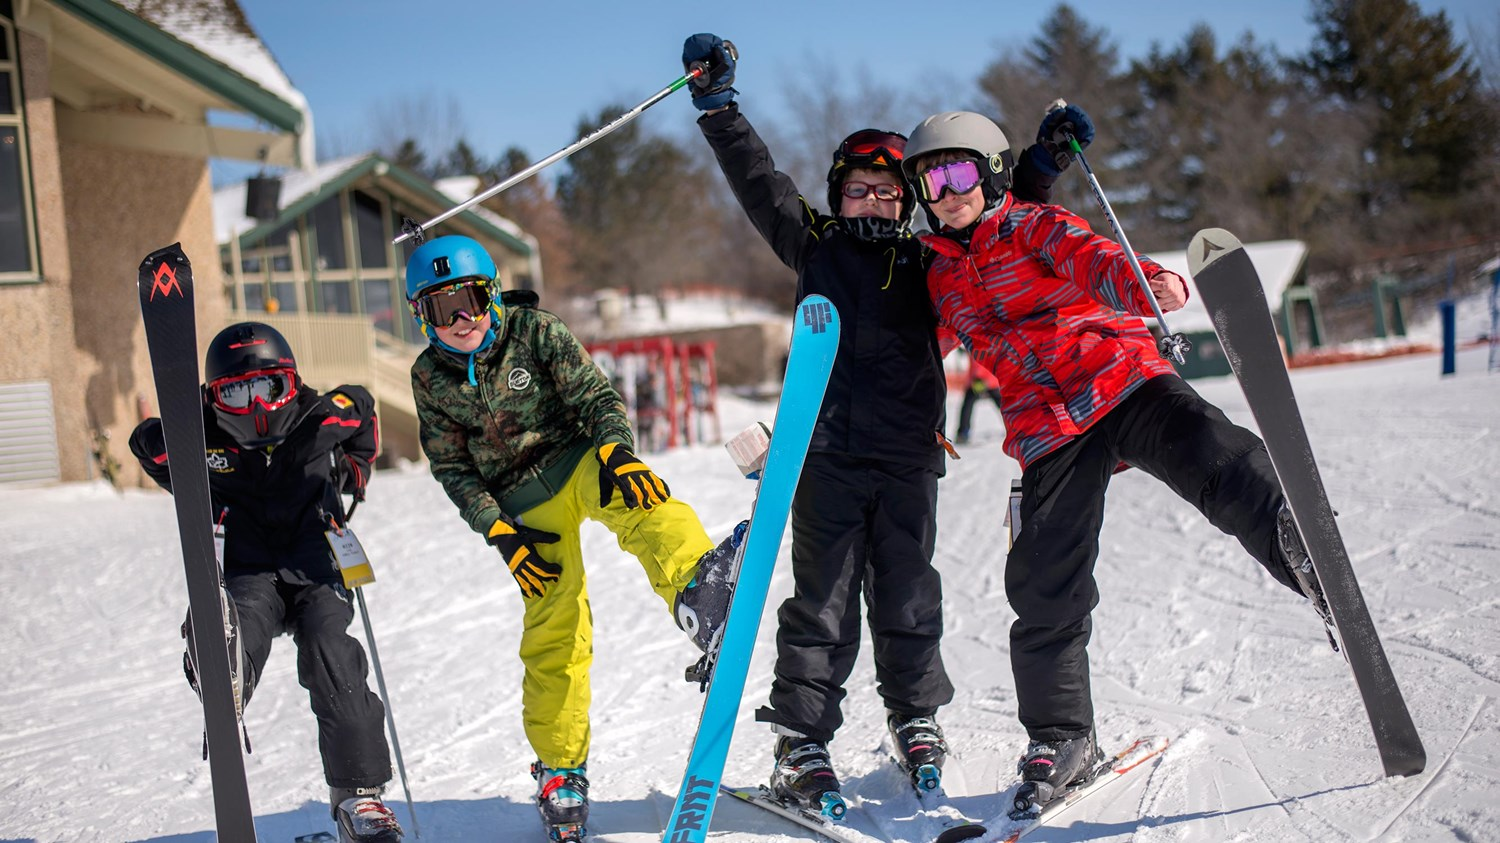 Kids posing with their skis